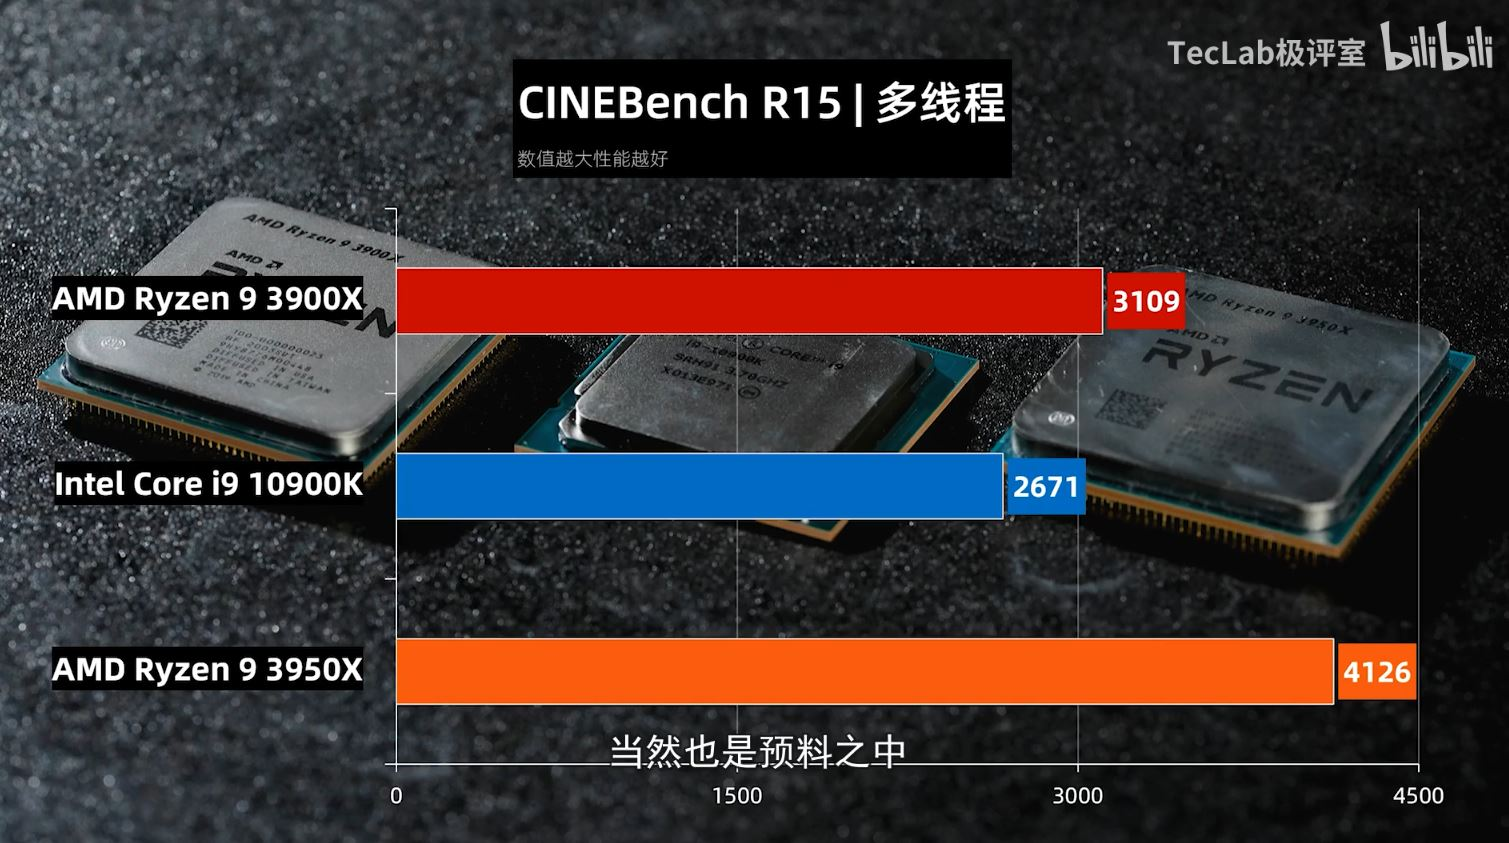 https://cdn.wccftech.com/wp-content/uploads/2020/05/TecLab-Core-i9-10900K-vs-Ryzen-9-3950X-vs-Ryzen-3-3900X-Cinebench-R15.jpg